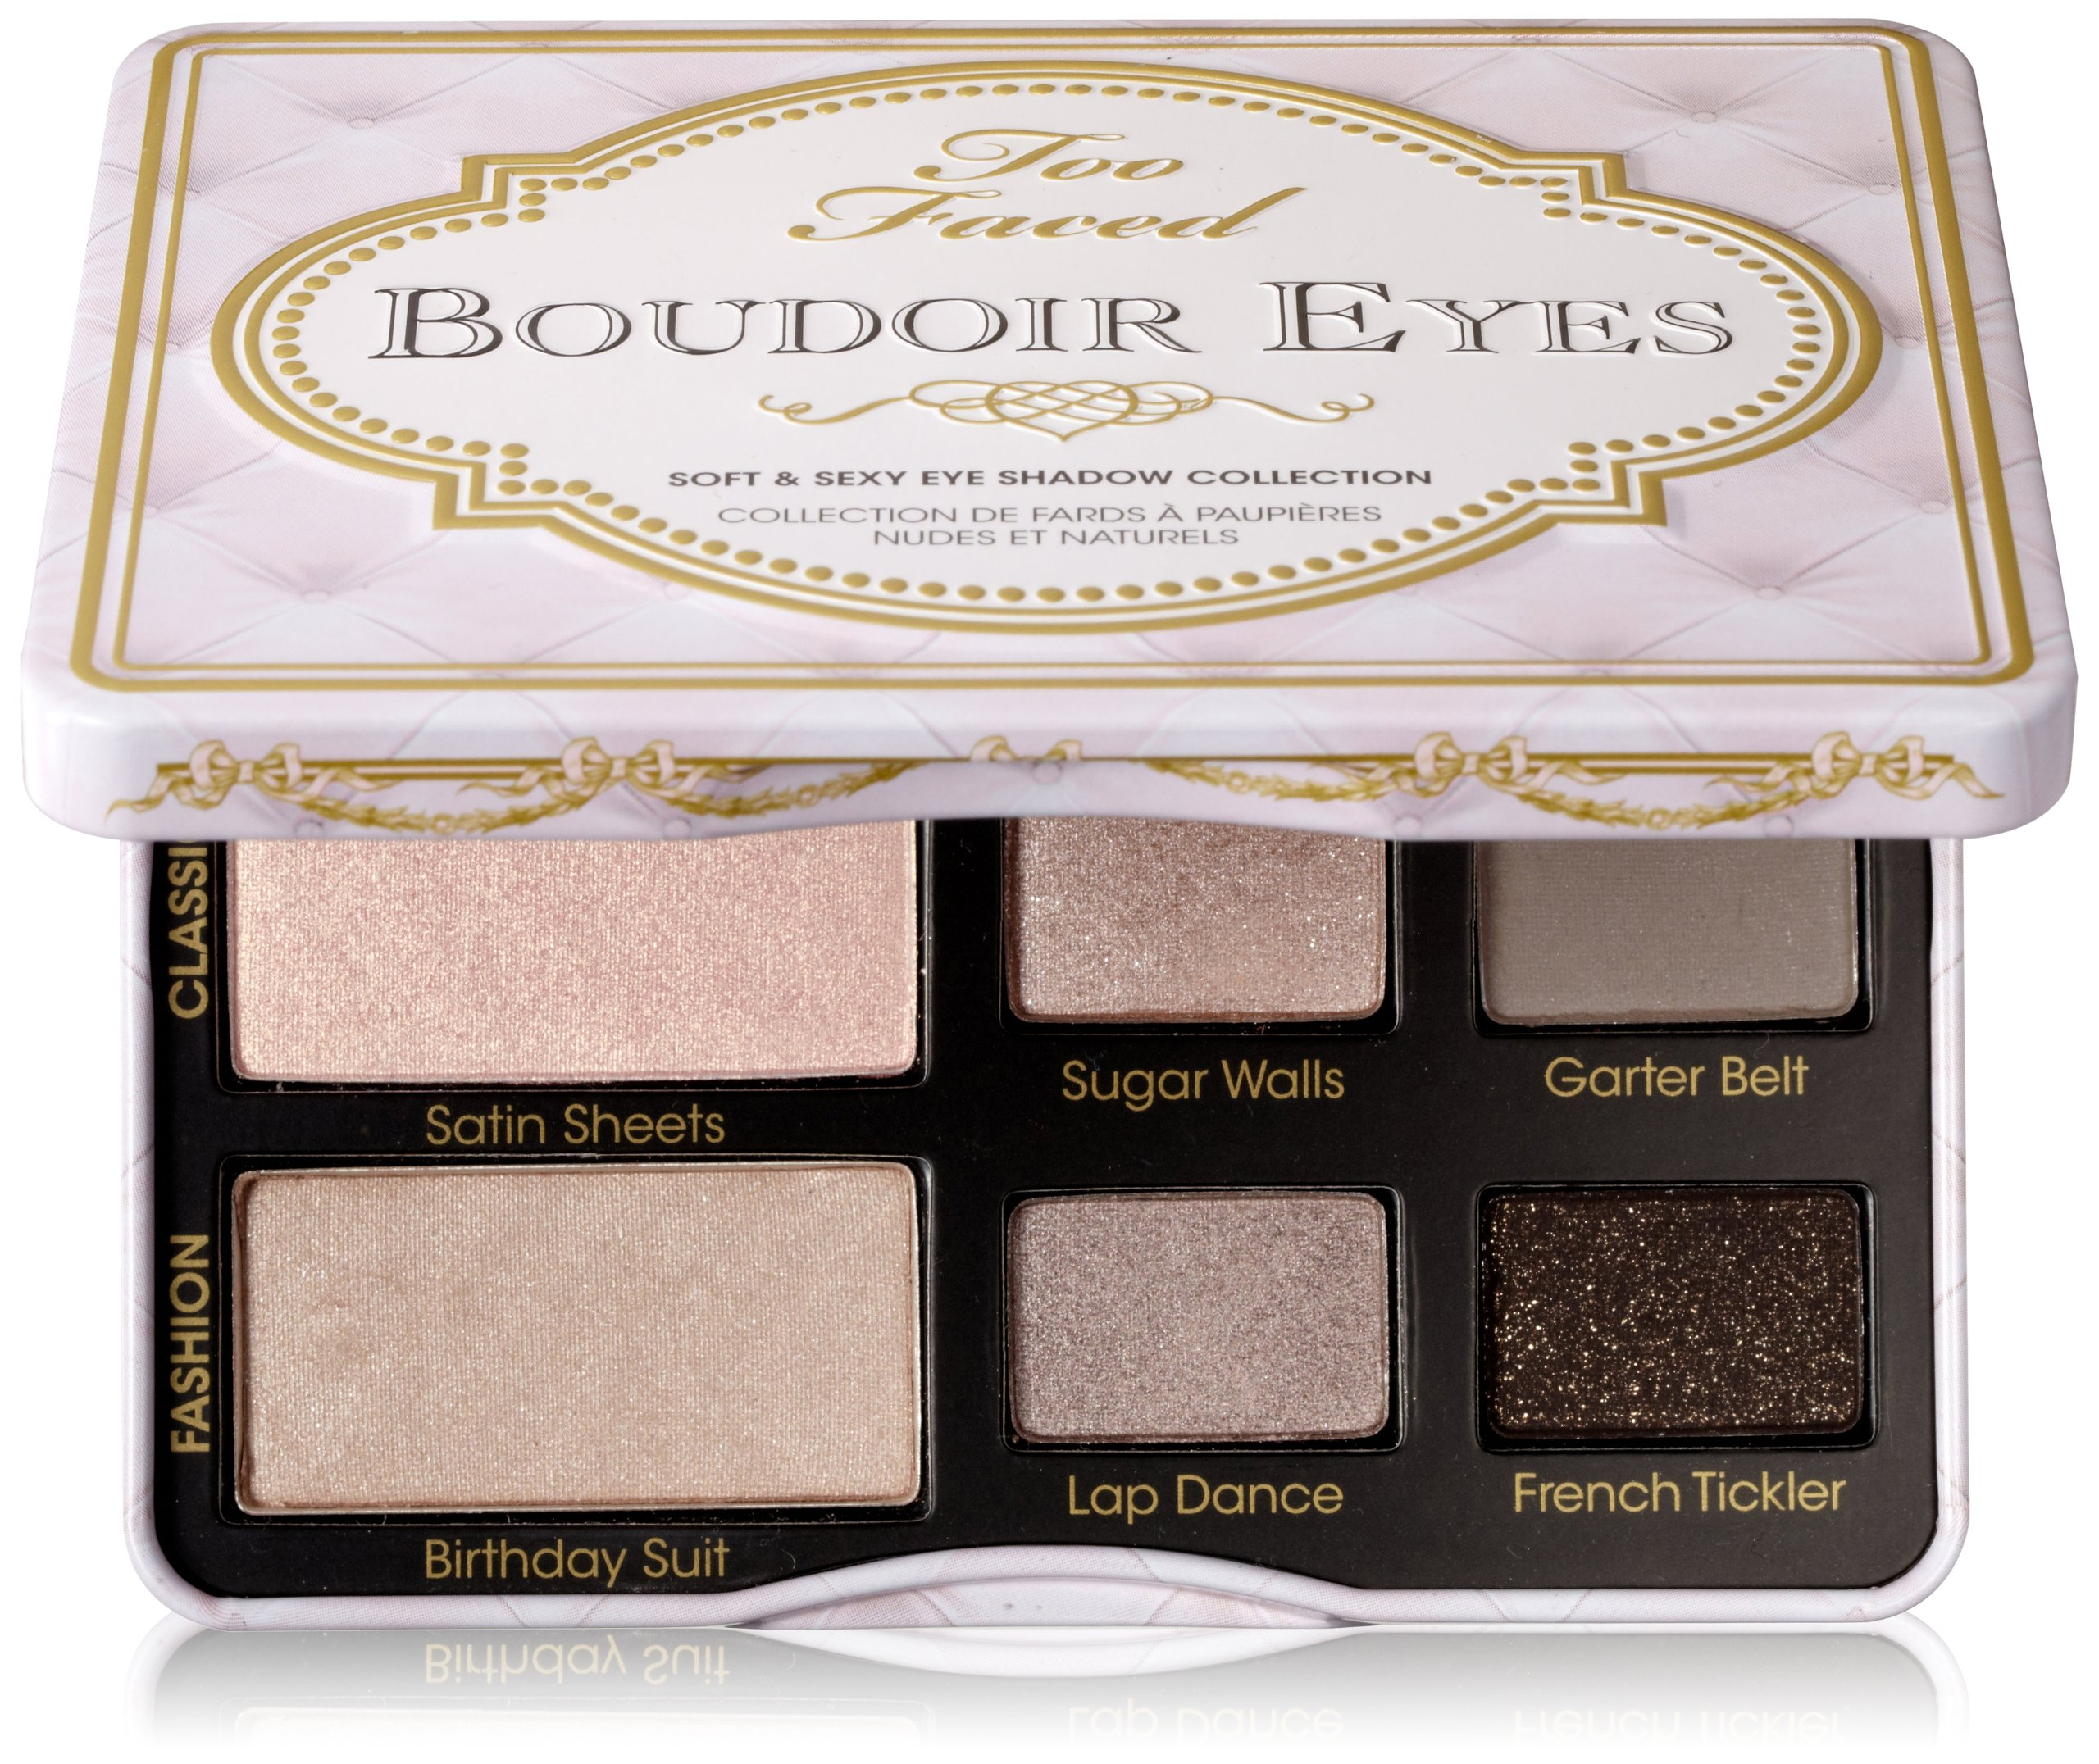 Too Faced - Too Faced Boudoir Eyes Soft and Sexy Eye Shadow Collection, 0.39 Ounce